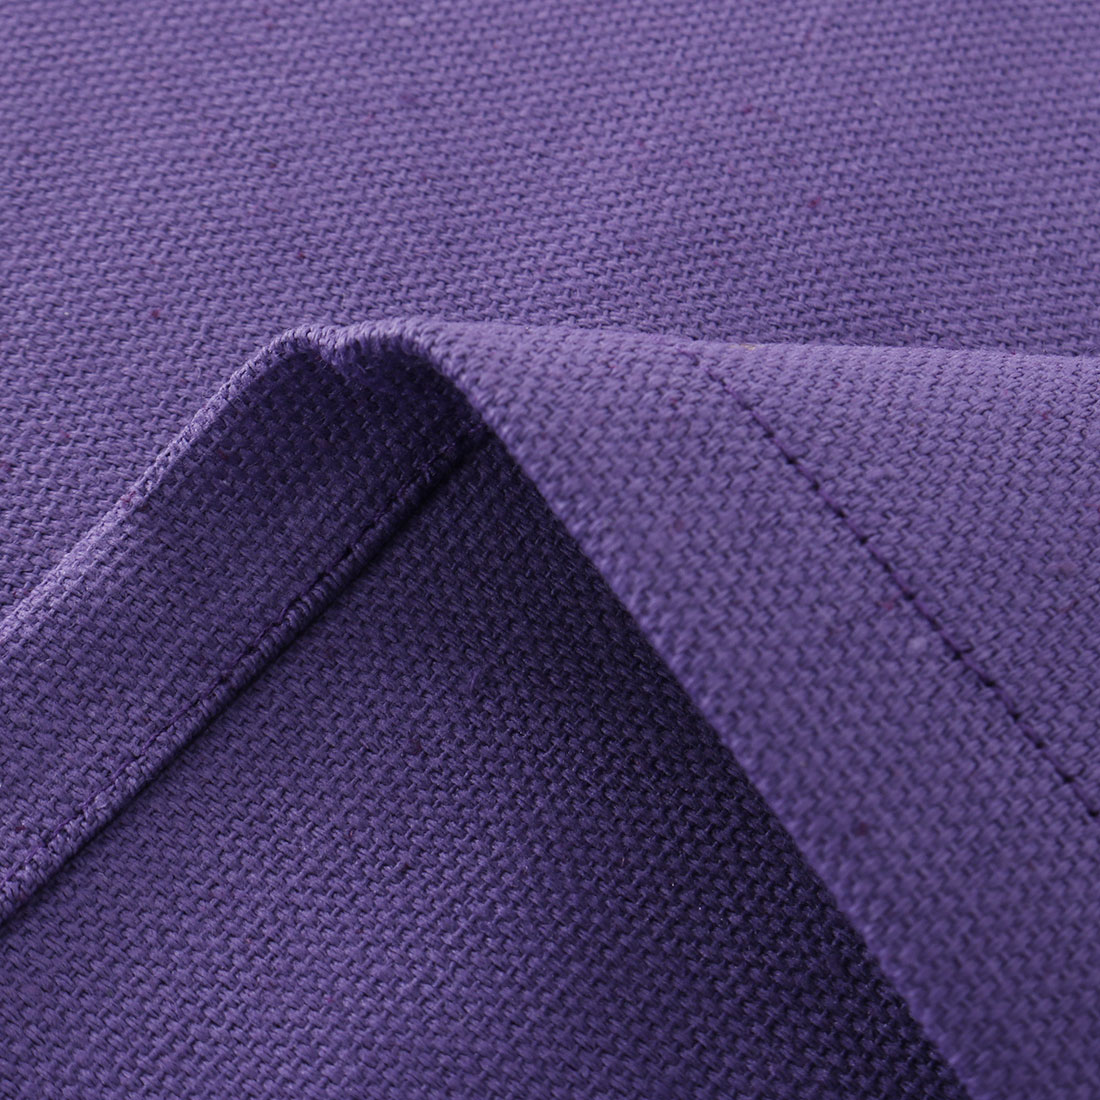 """Vintage Rectangle Cotton Linen Tablecloth Purple 55""""x71"""" Water Stain Resistant - image 2 of 7"""